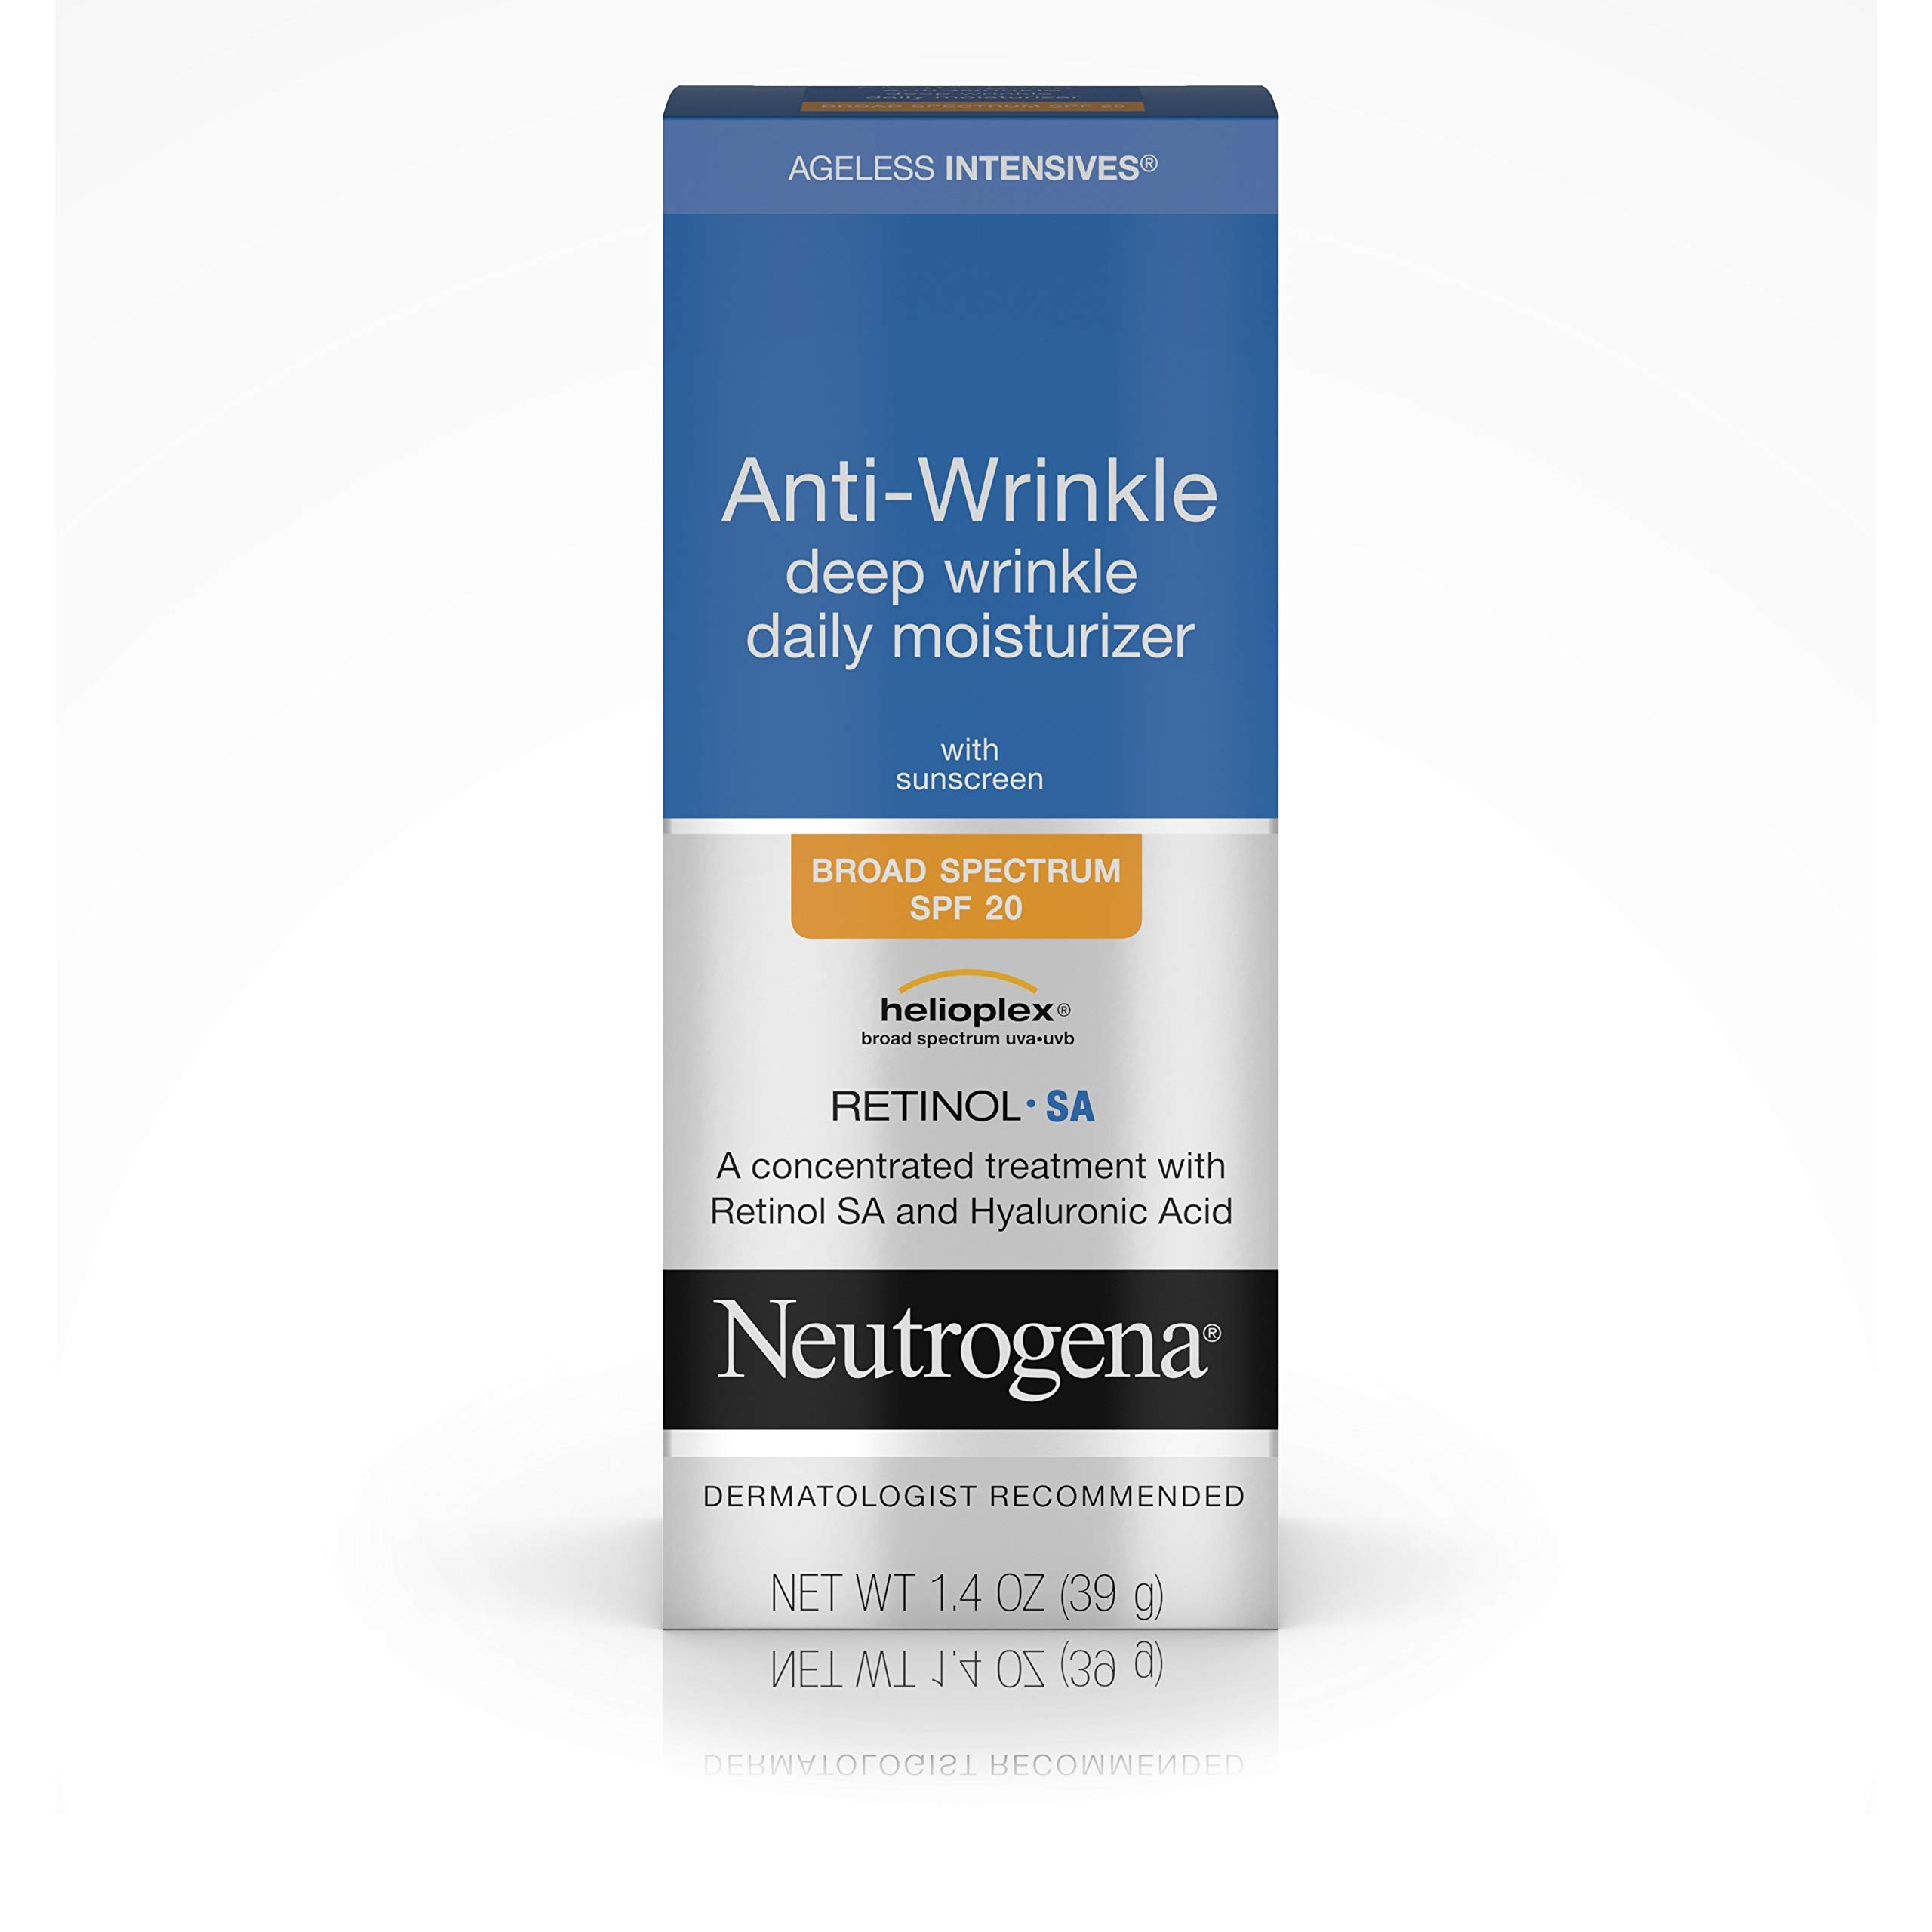 Neutrogena Ageless Intensives Anti Wrinkle Cream - Facial Moisturizer with SPF 20 Sunscreen, Retinol and Hyaluronic Acid to Fight Signs of Aging, Retinol, Hyaluronic Acid, Glycerin 1.4 oz by Neutrogena